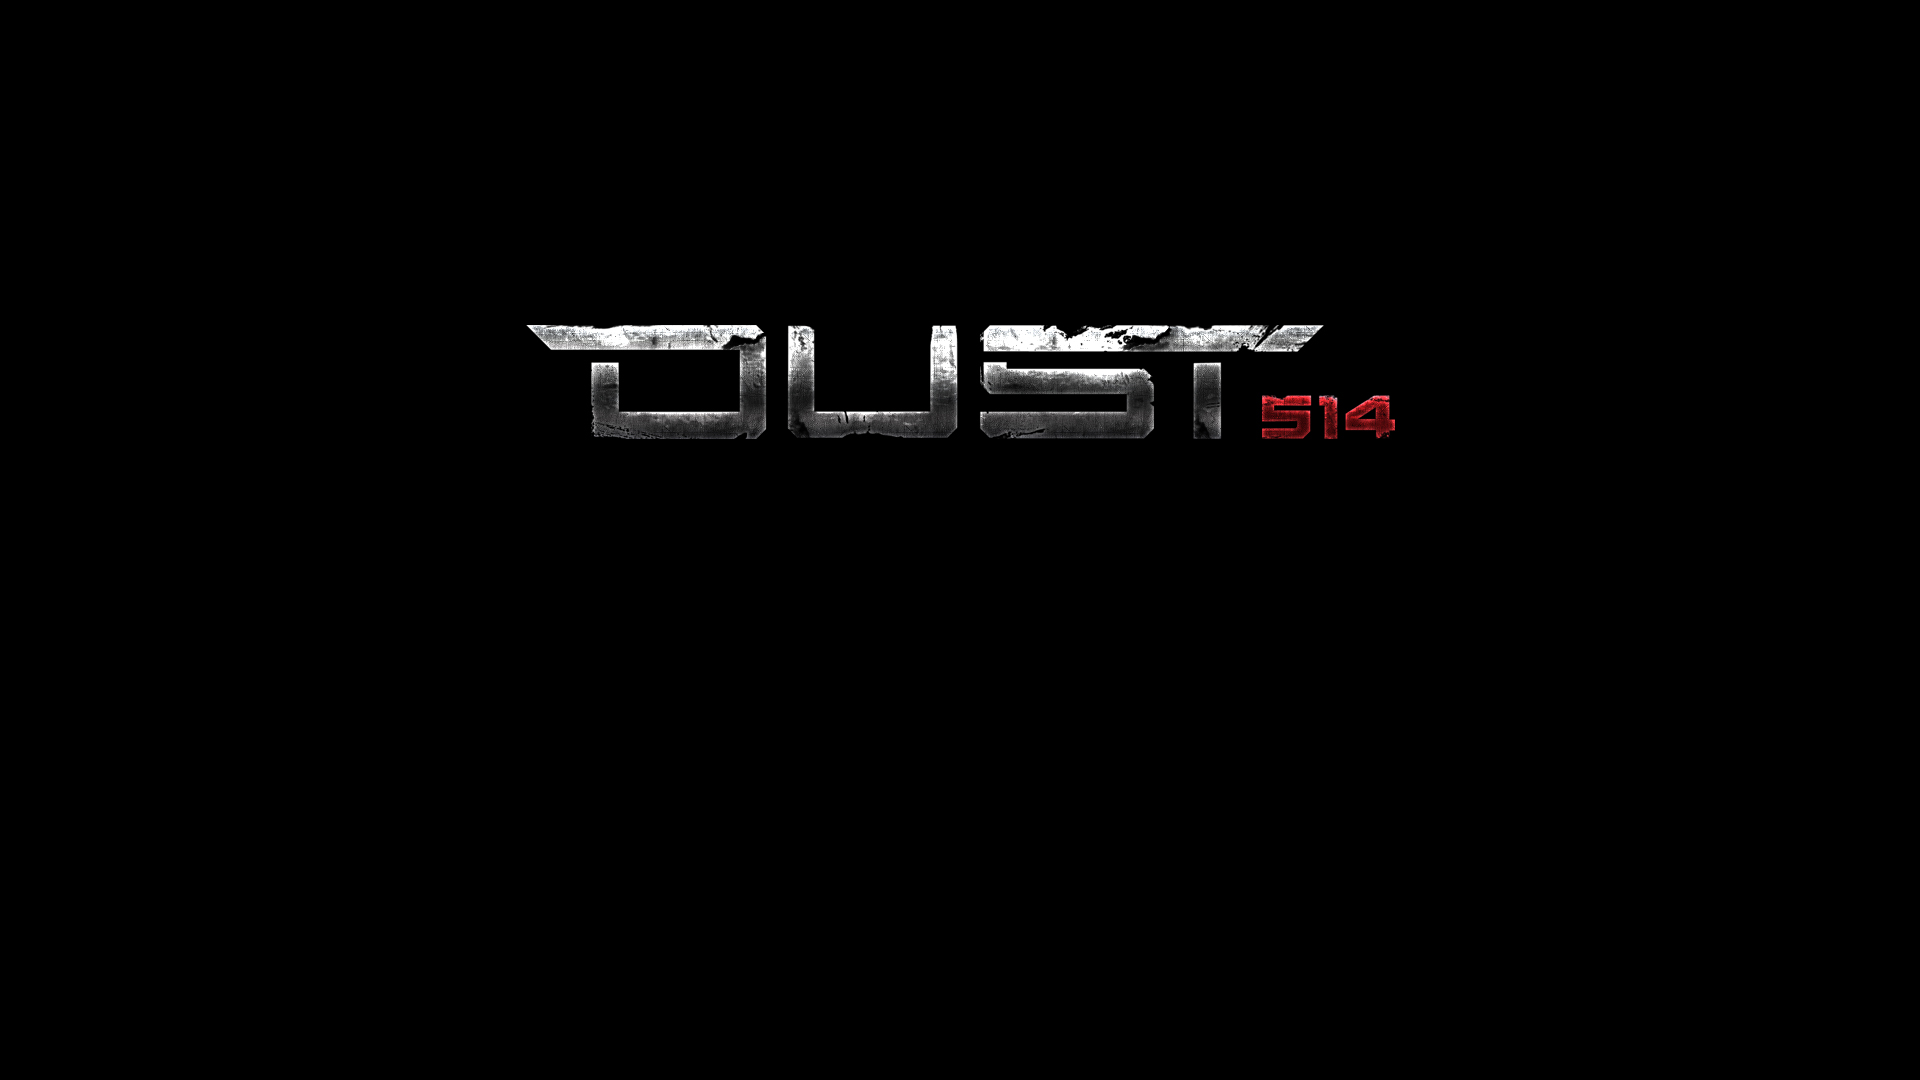 Dust 514 wallpaper 13